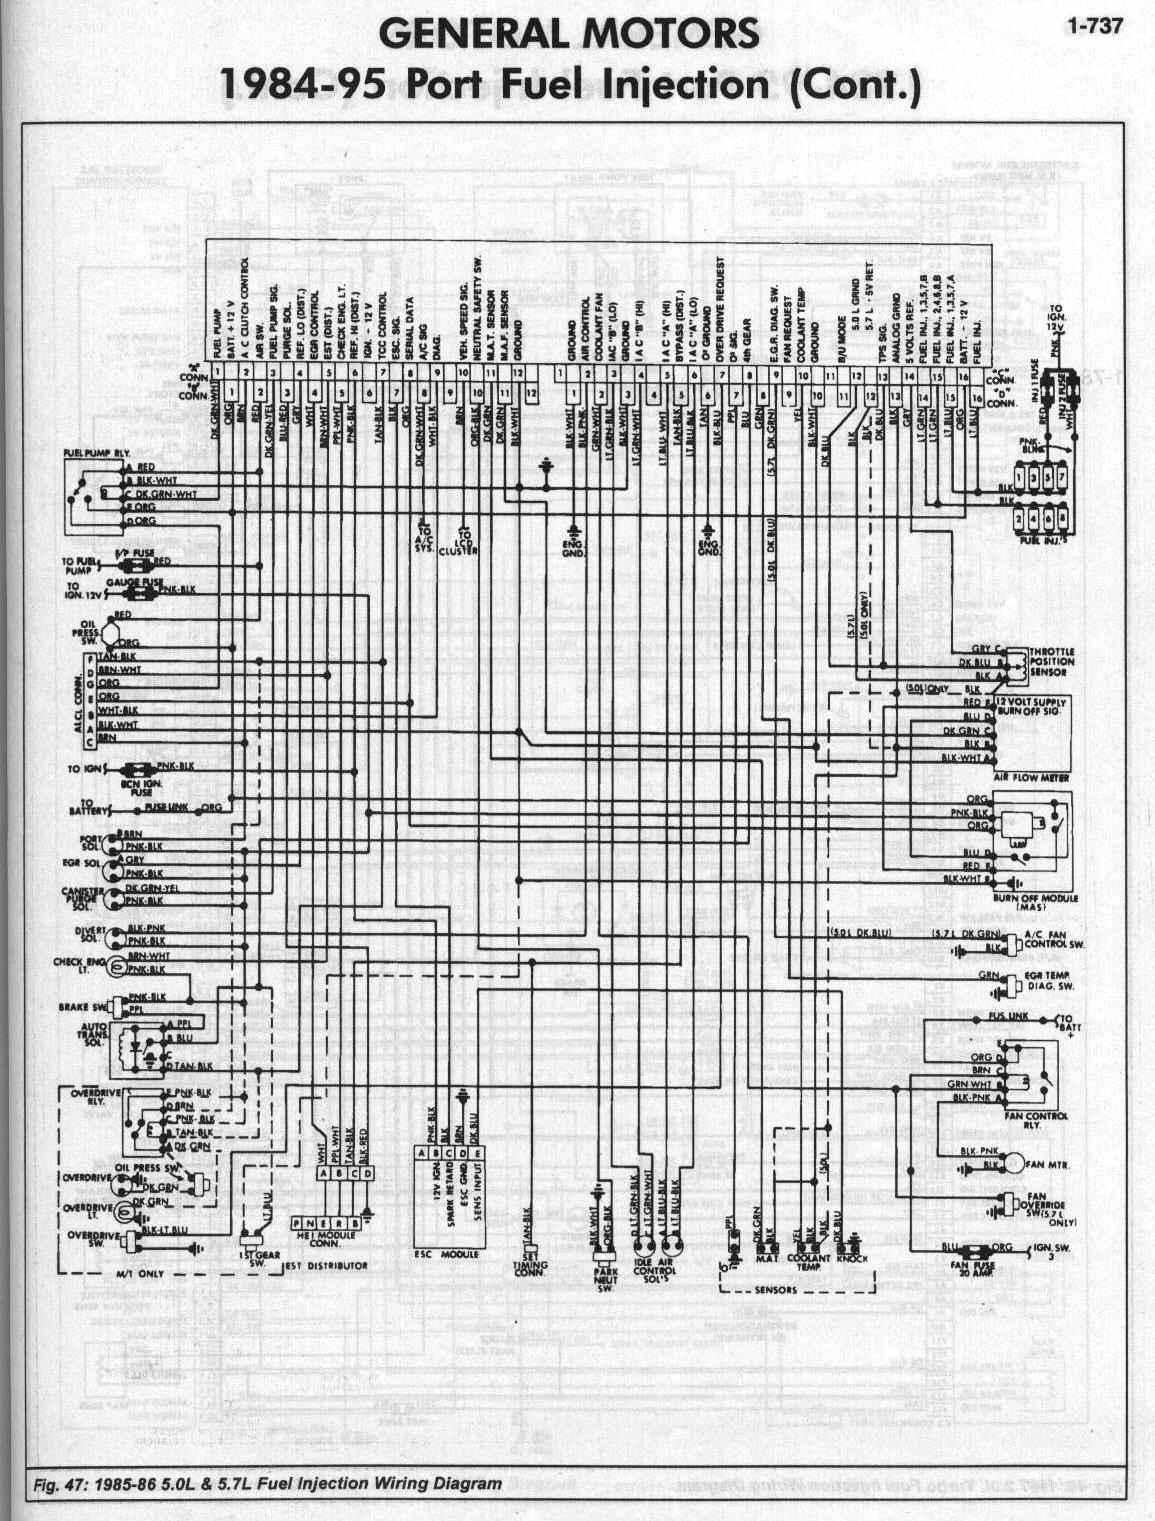 1981 Corvette Engine Diagram 1985 Vacuum Hose Wiring Schematic Worksheet And 85 S10 V6 Diagrams Experts Of U2022 Rh Evilcloud Co Uk 1980